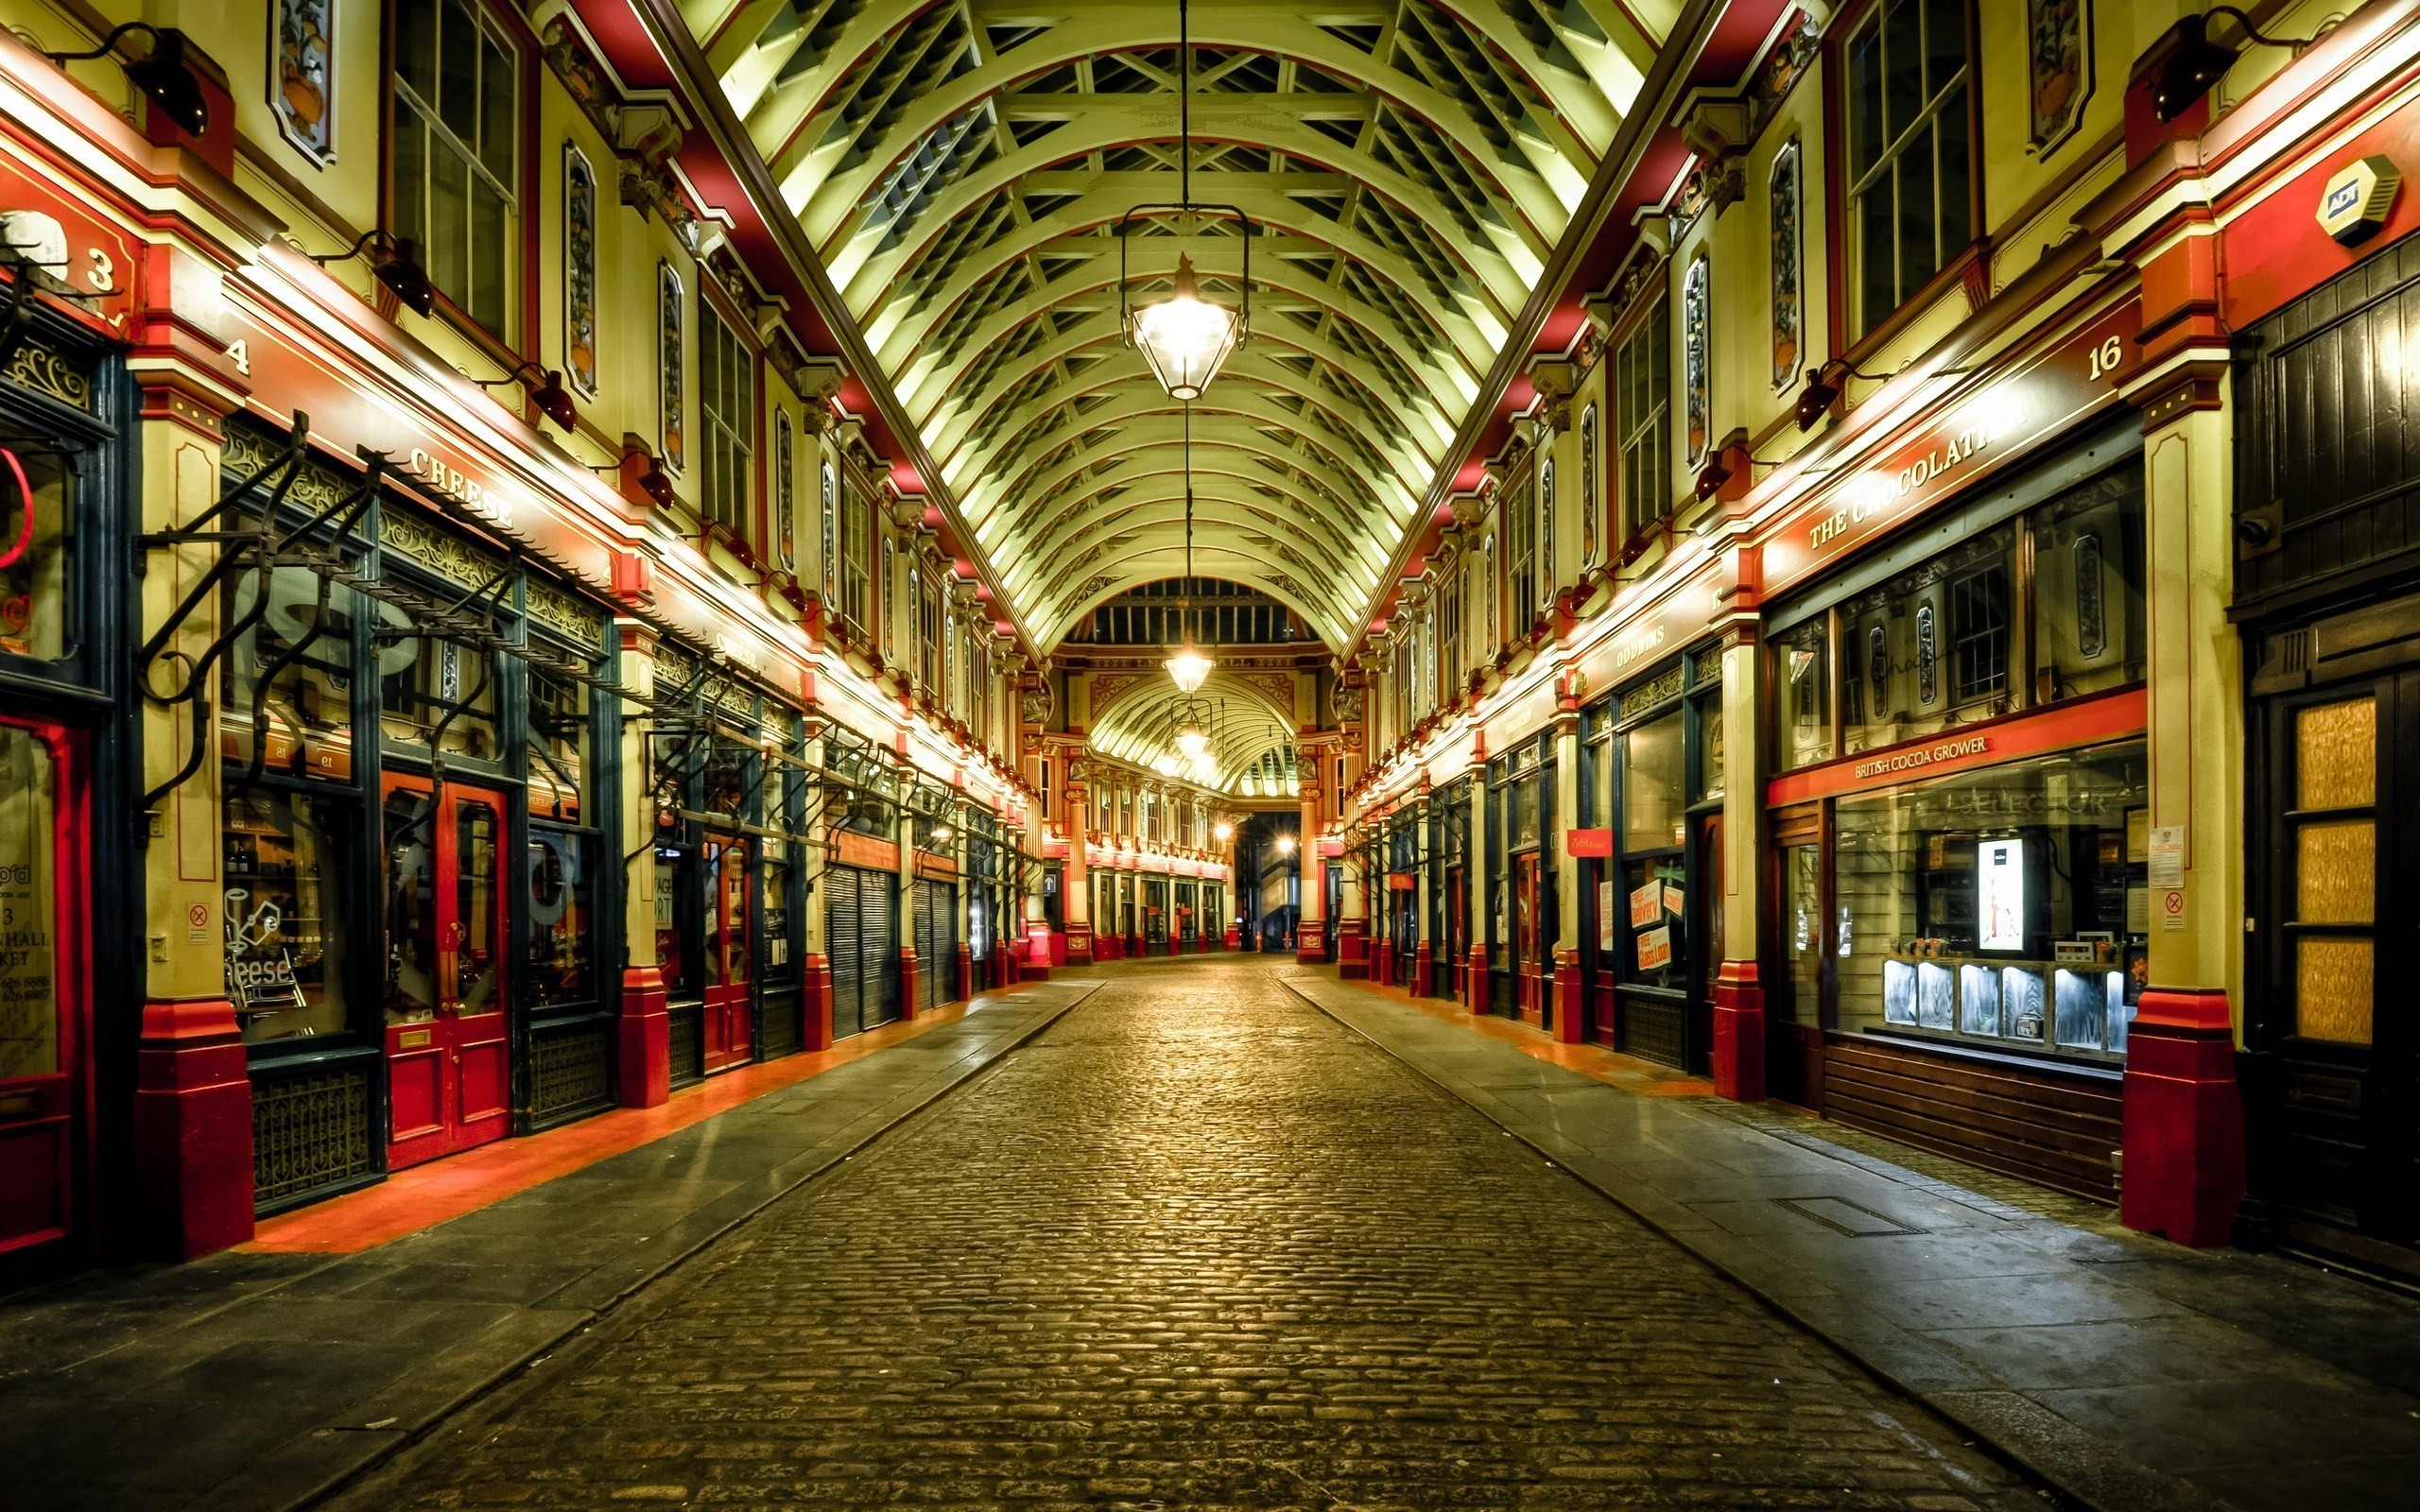 2560x1600 Streets of London at night wallpapers and images - wallpapers, pictures,  photos